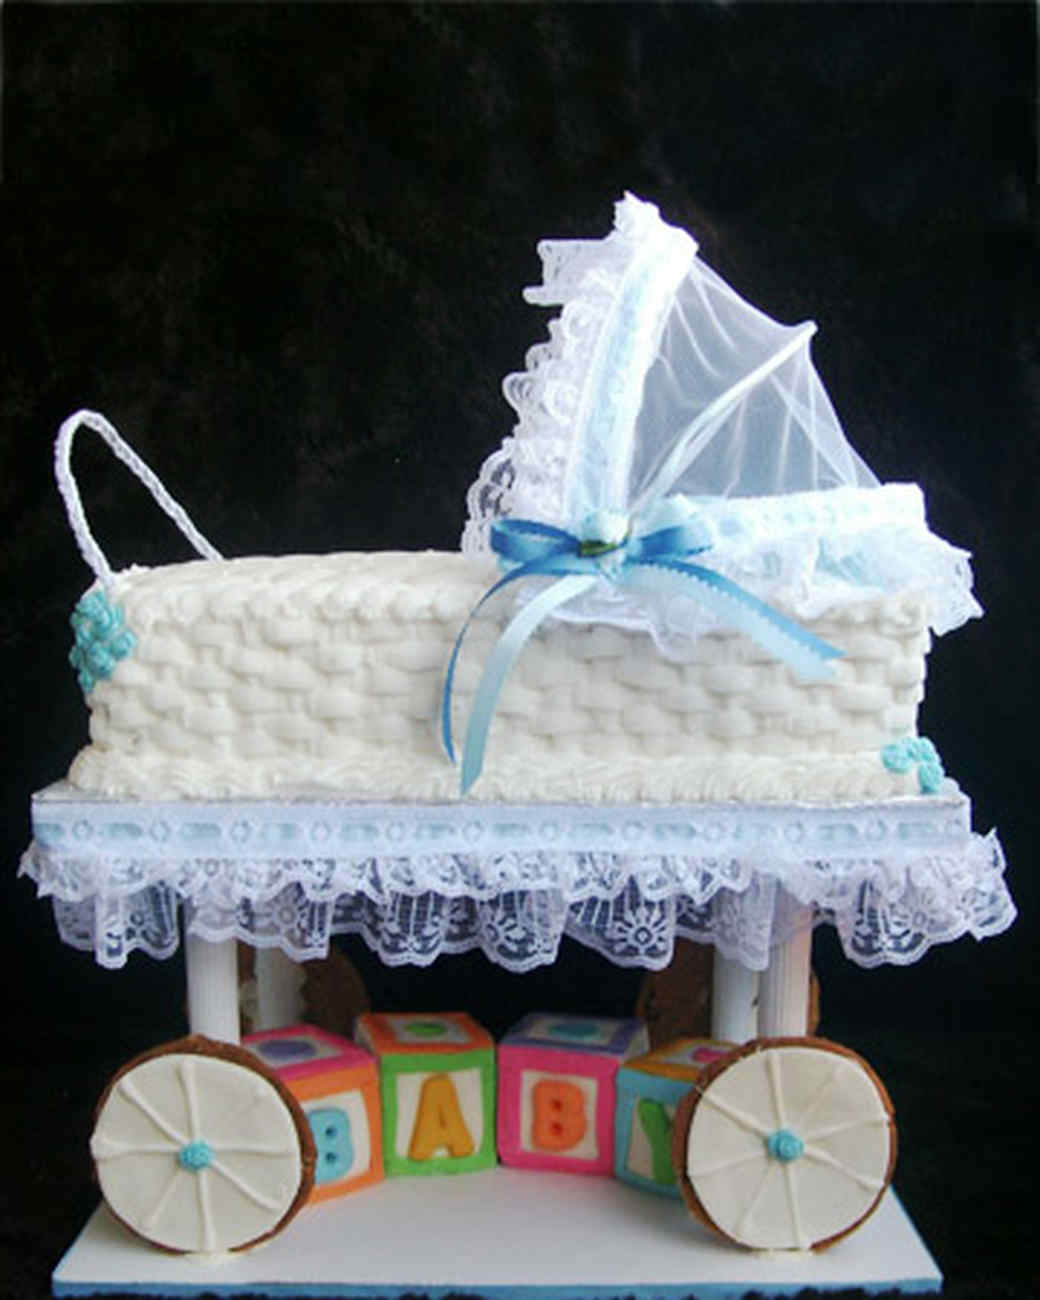 Your best baby shower ideas martha stewart - Baby shower decorations martha stewart ...